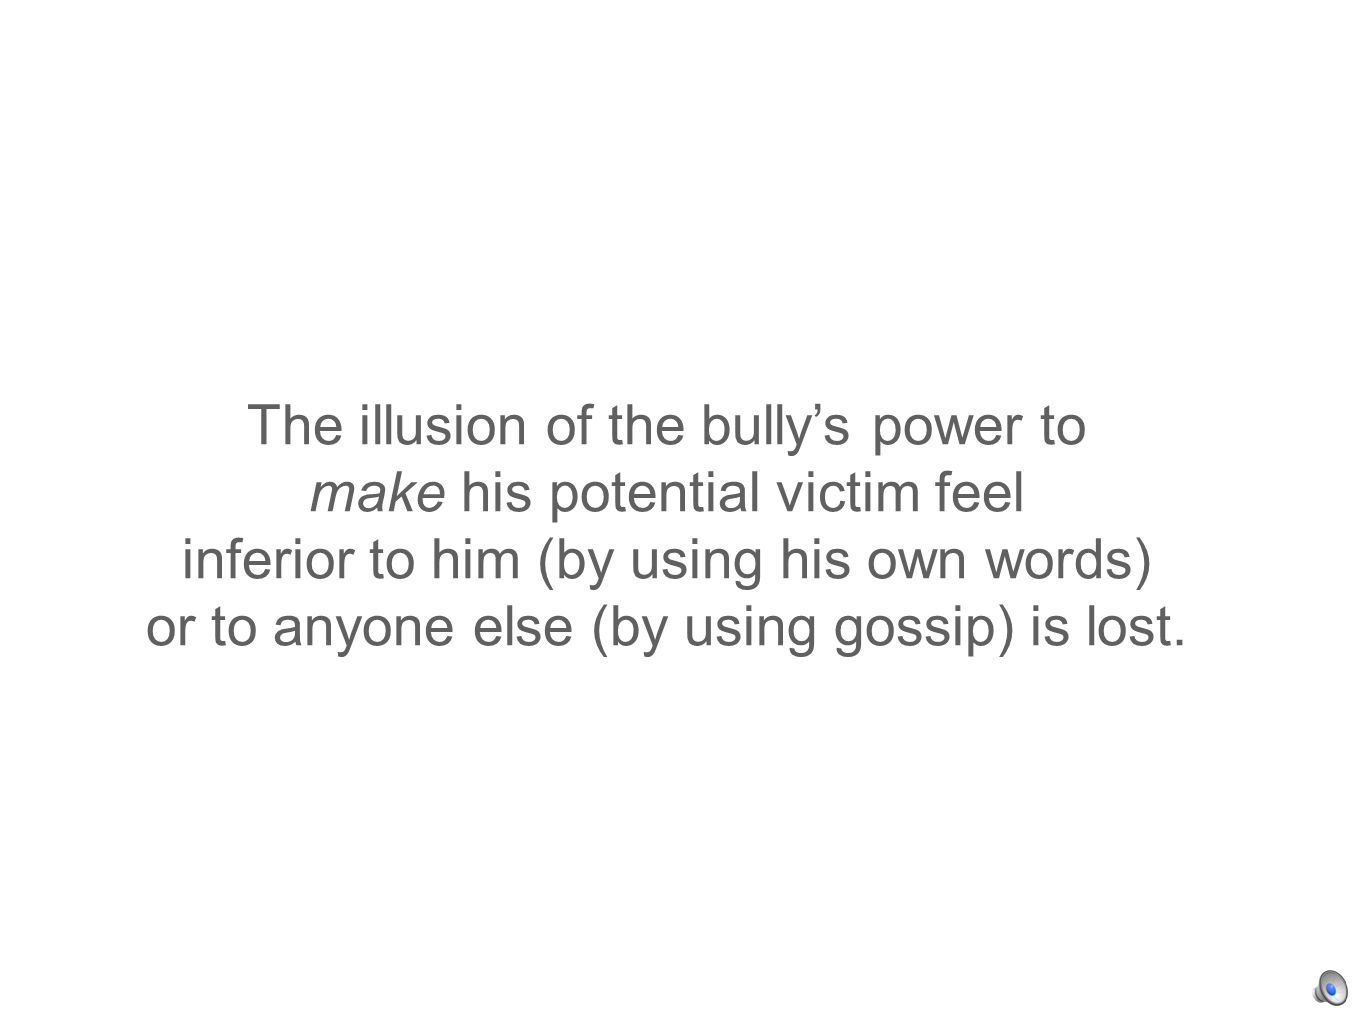 The illusion of the bullys power to make his potential victim feel inferior to him (by using his own words) or to anyone else (by using gossip) is lost.